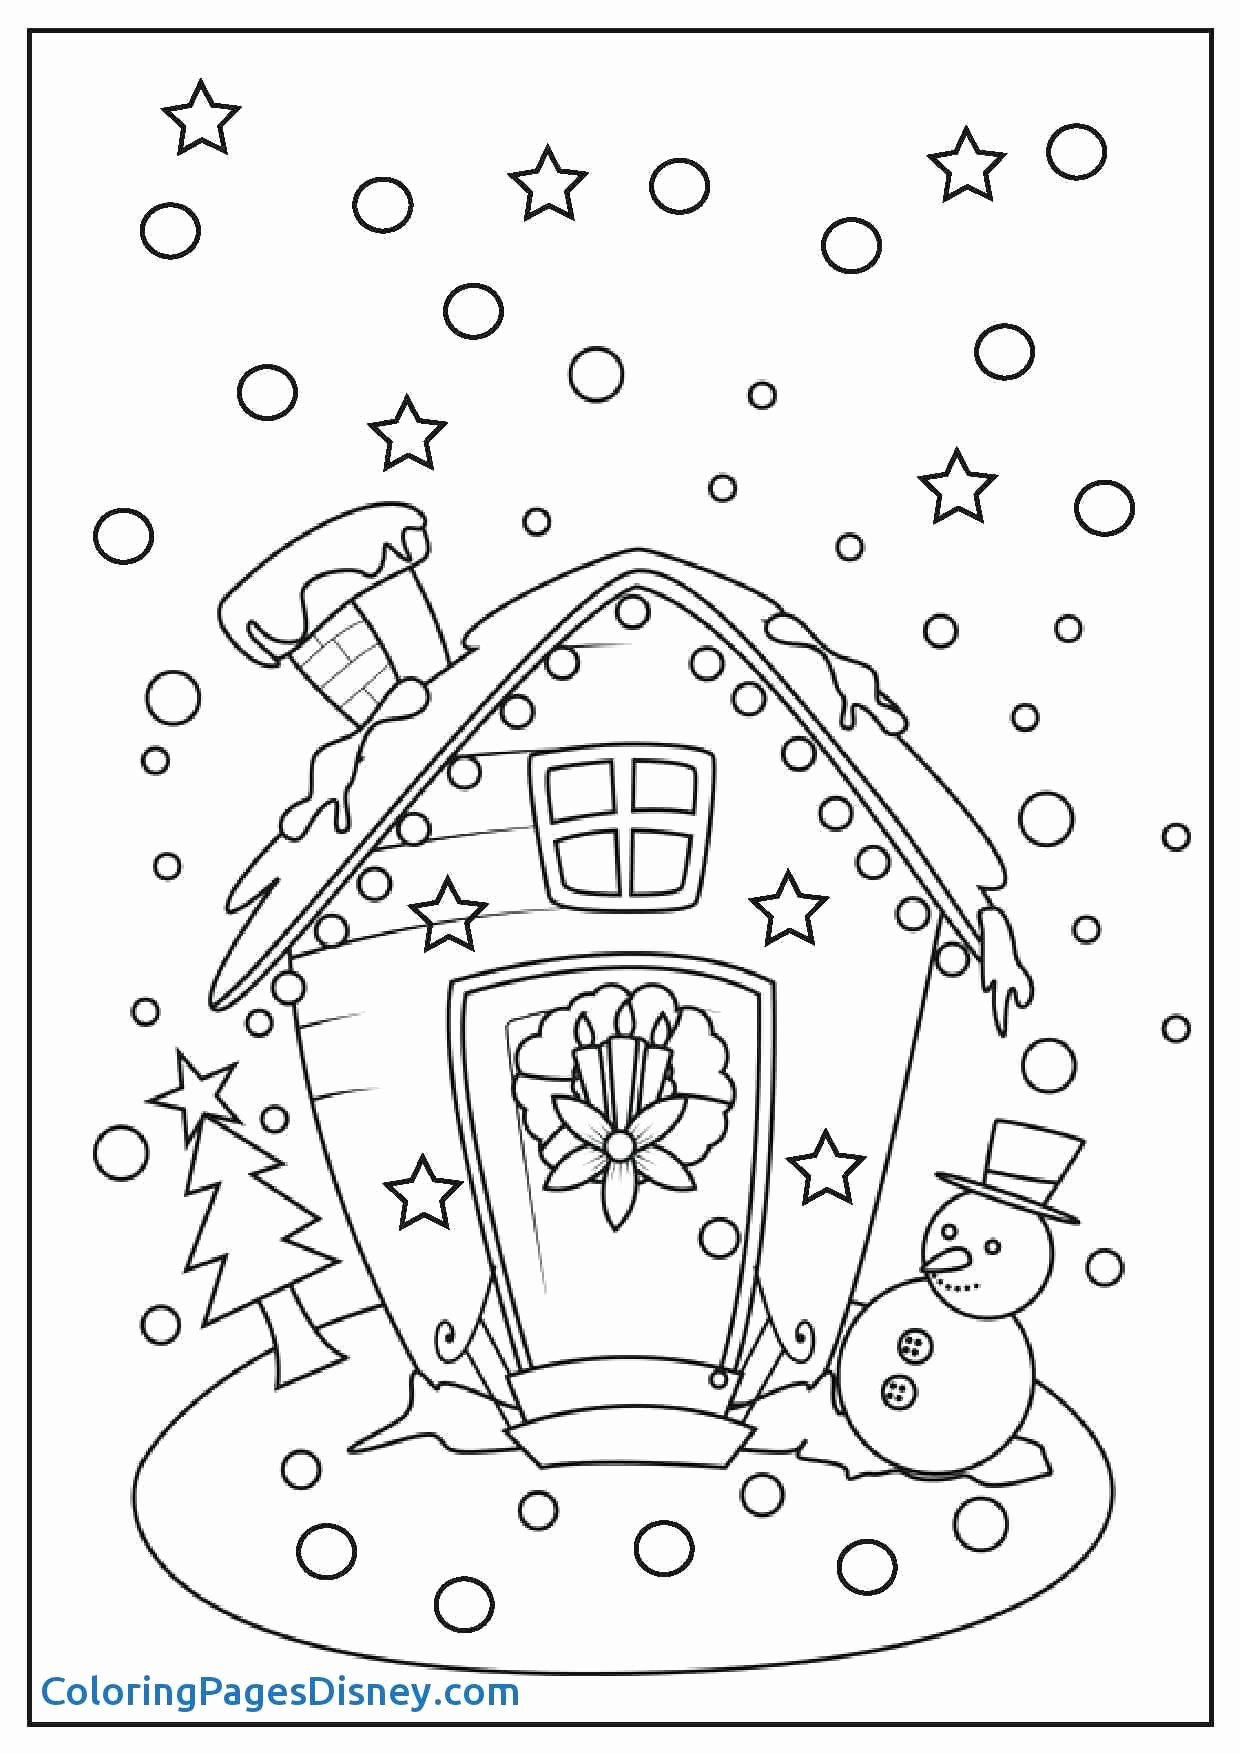 Printable Christmas Coloring Pages With Snowman Awesome